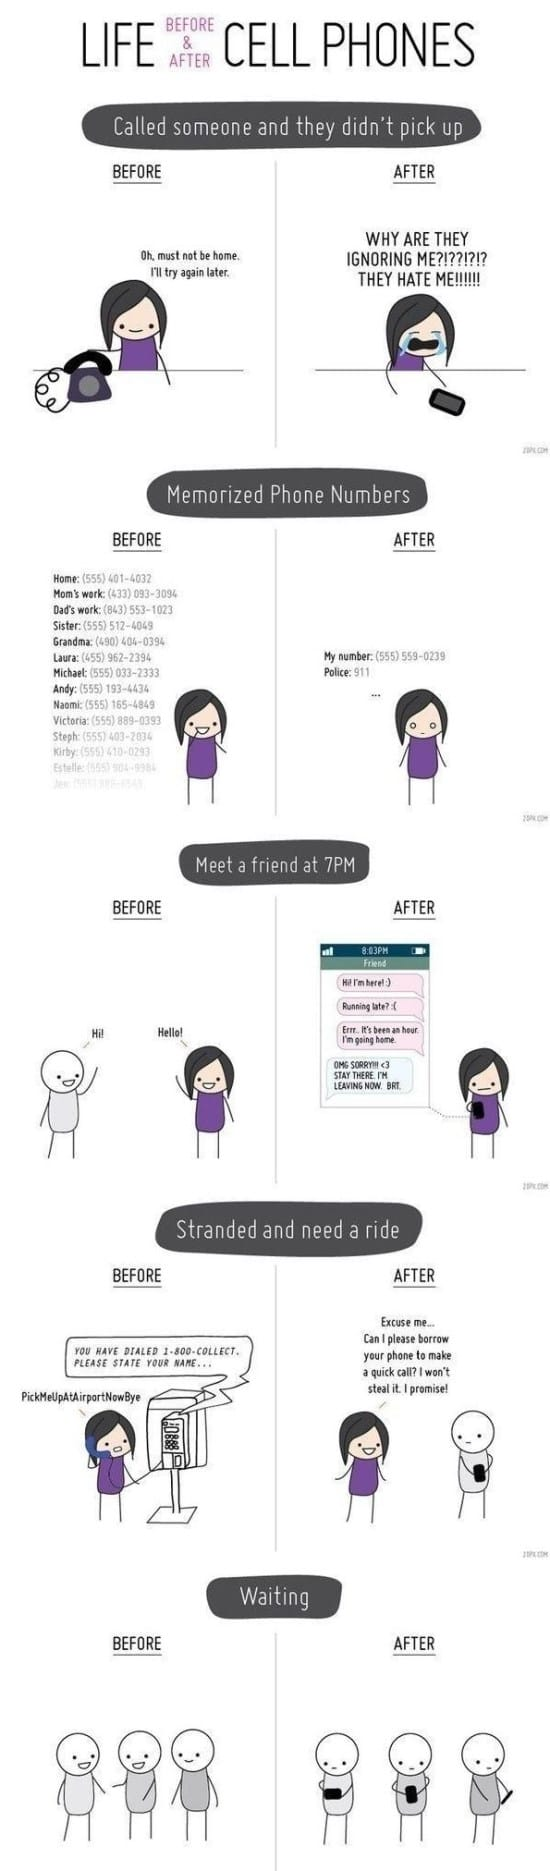 life-before-and-after-cell-phones-and